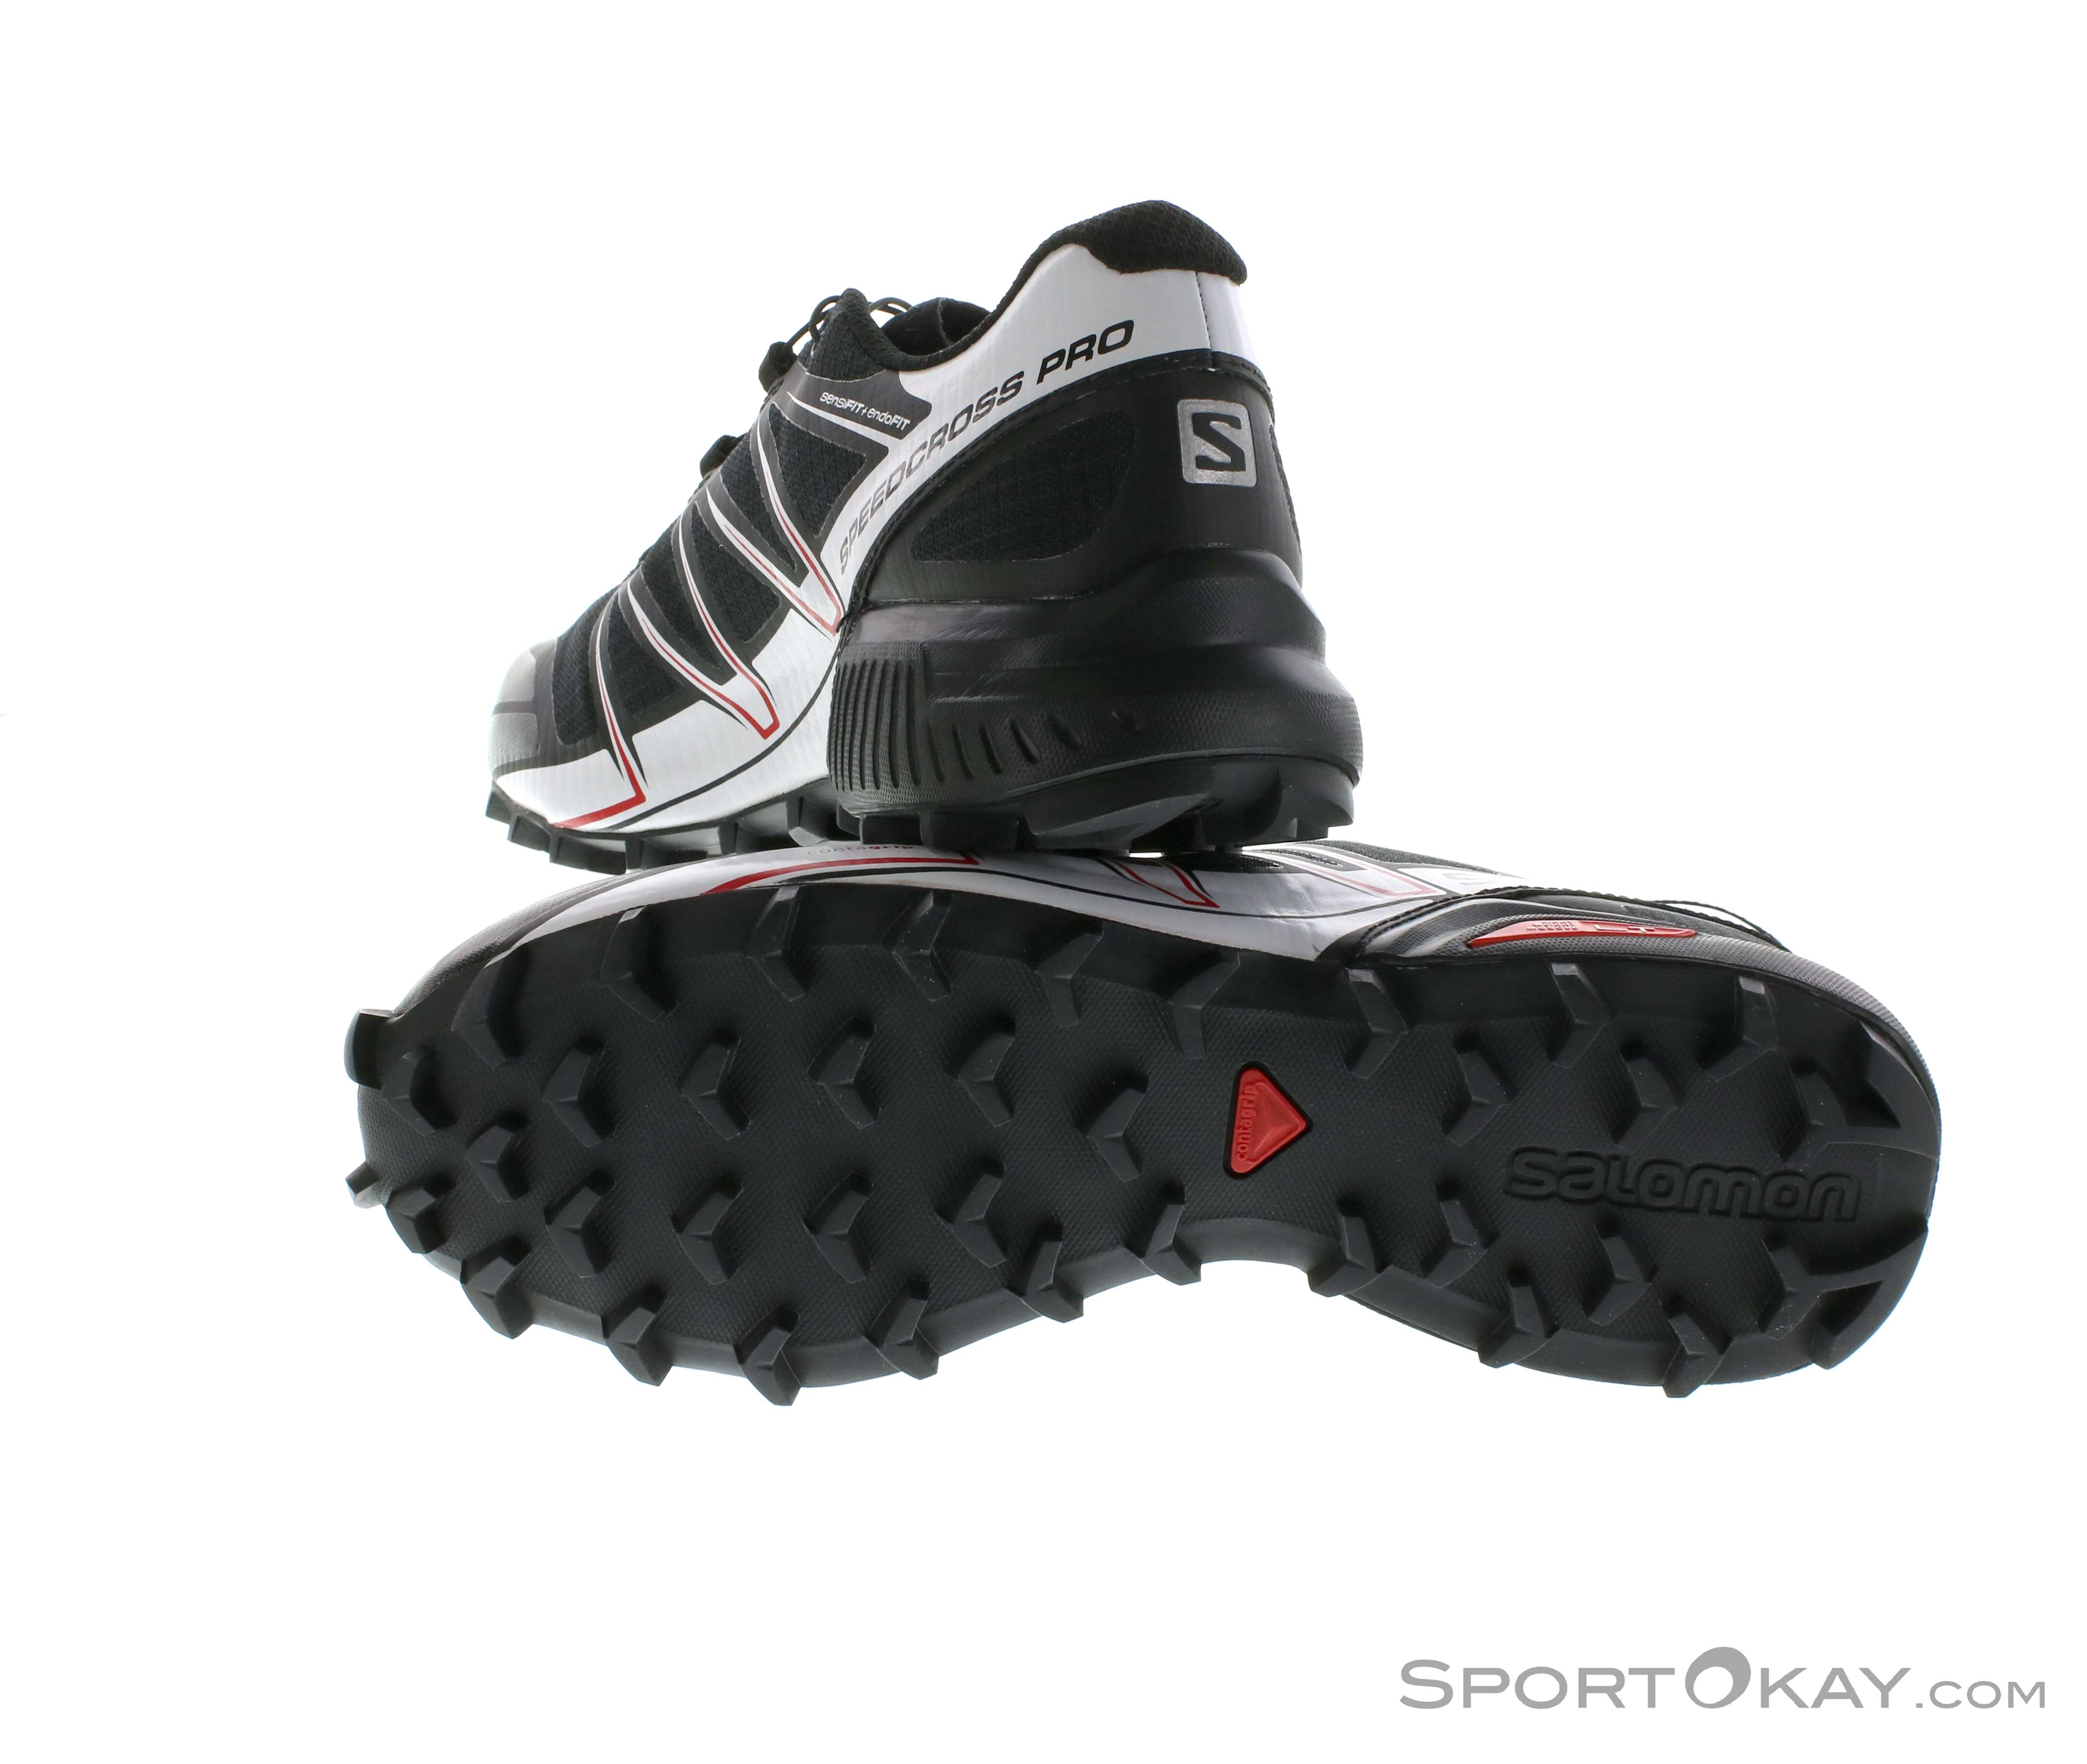 e905fc1decb Salomon Salomon Speedcross 3 Pro Mens Trail Running Shoes